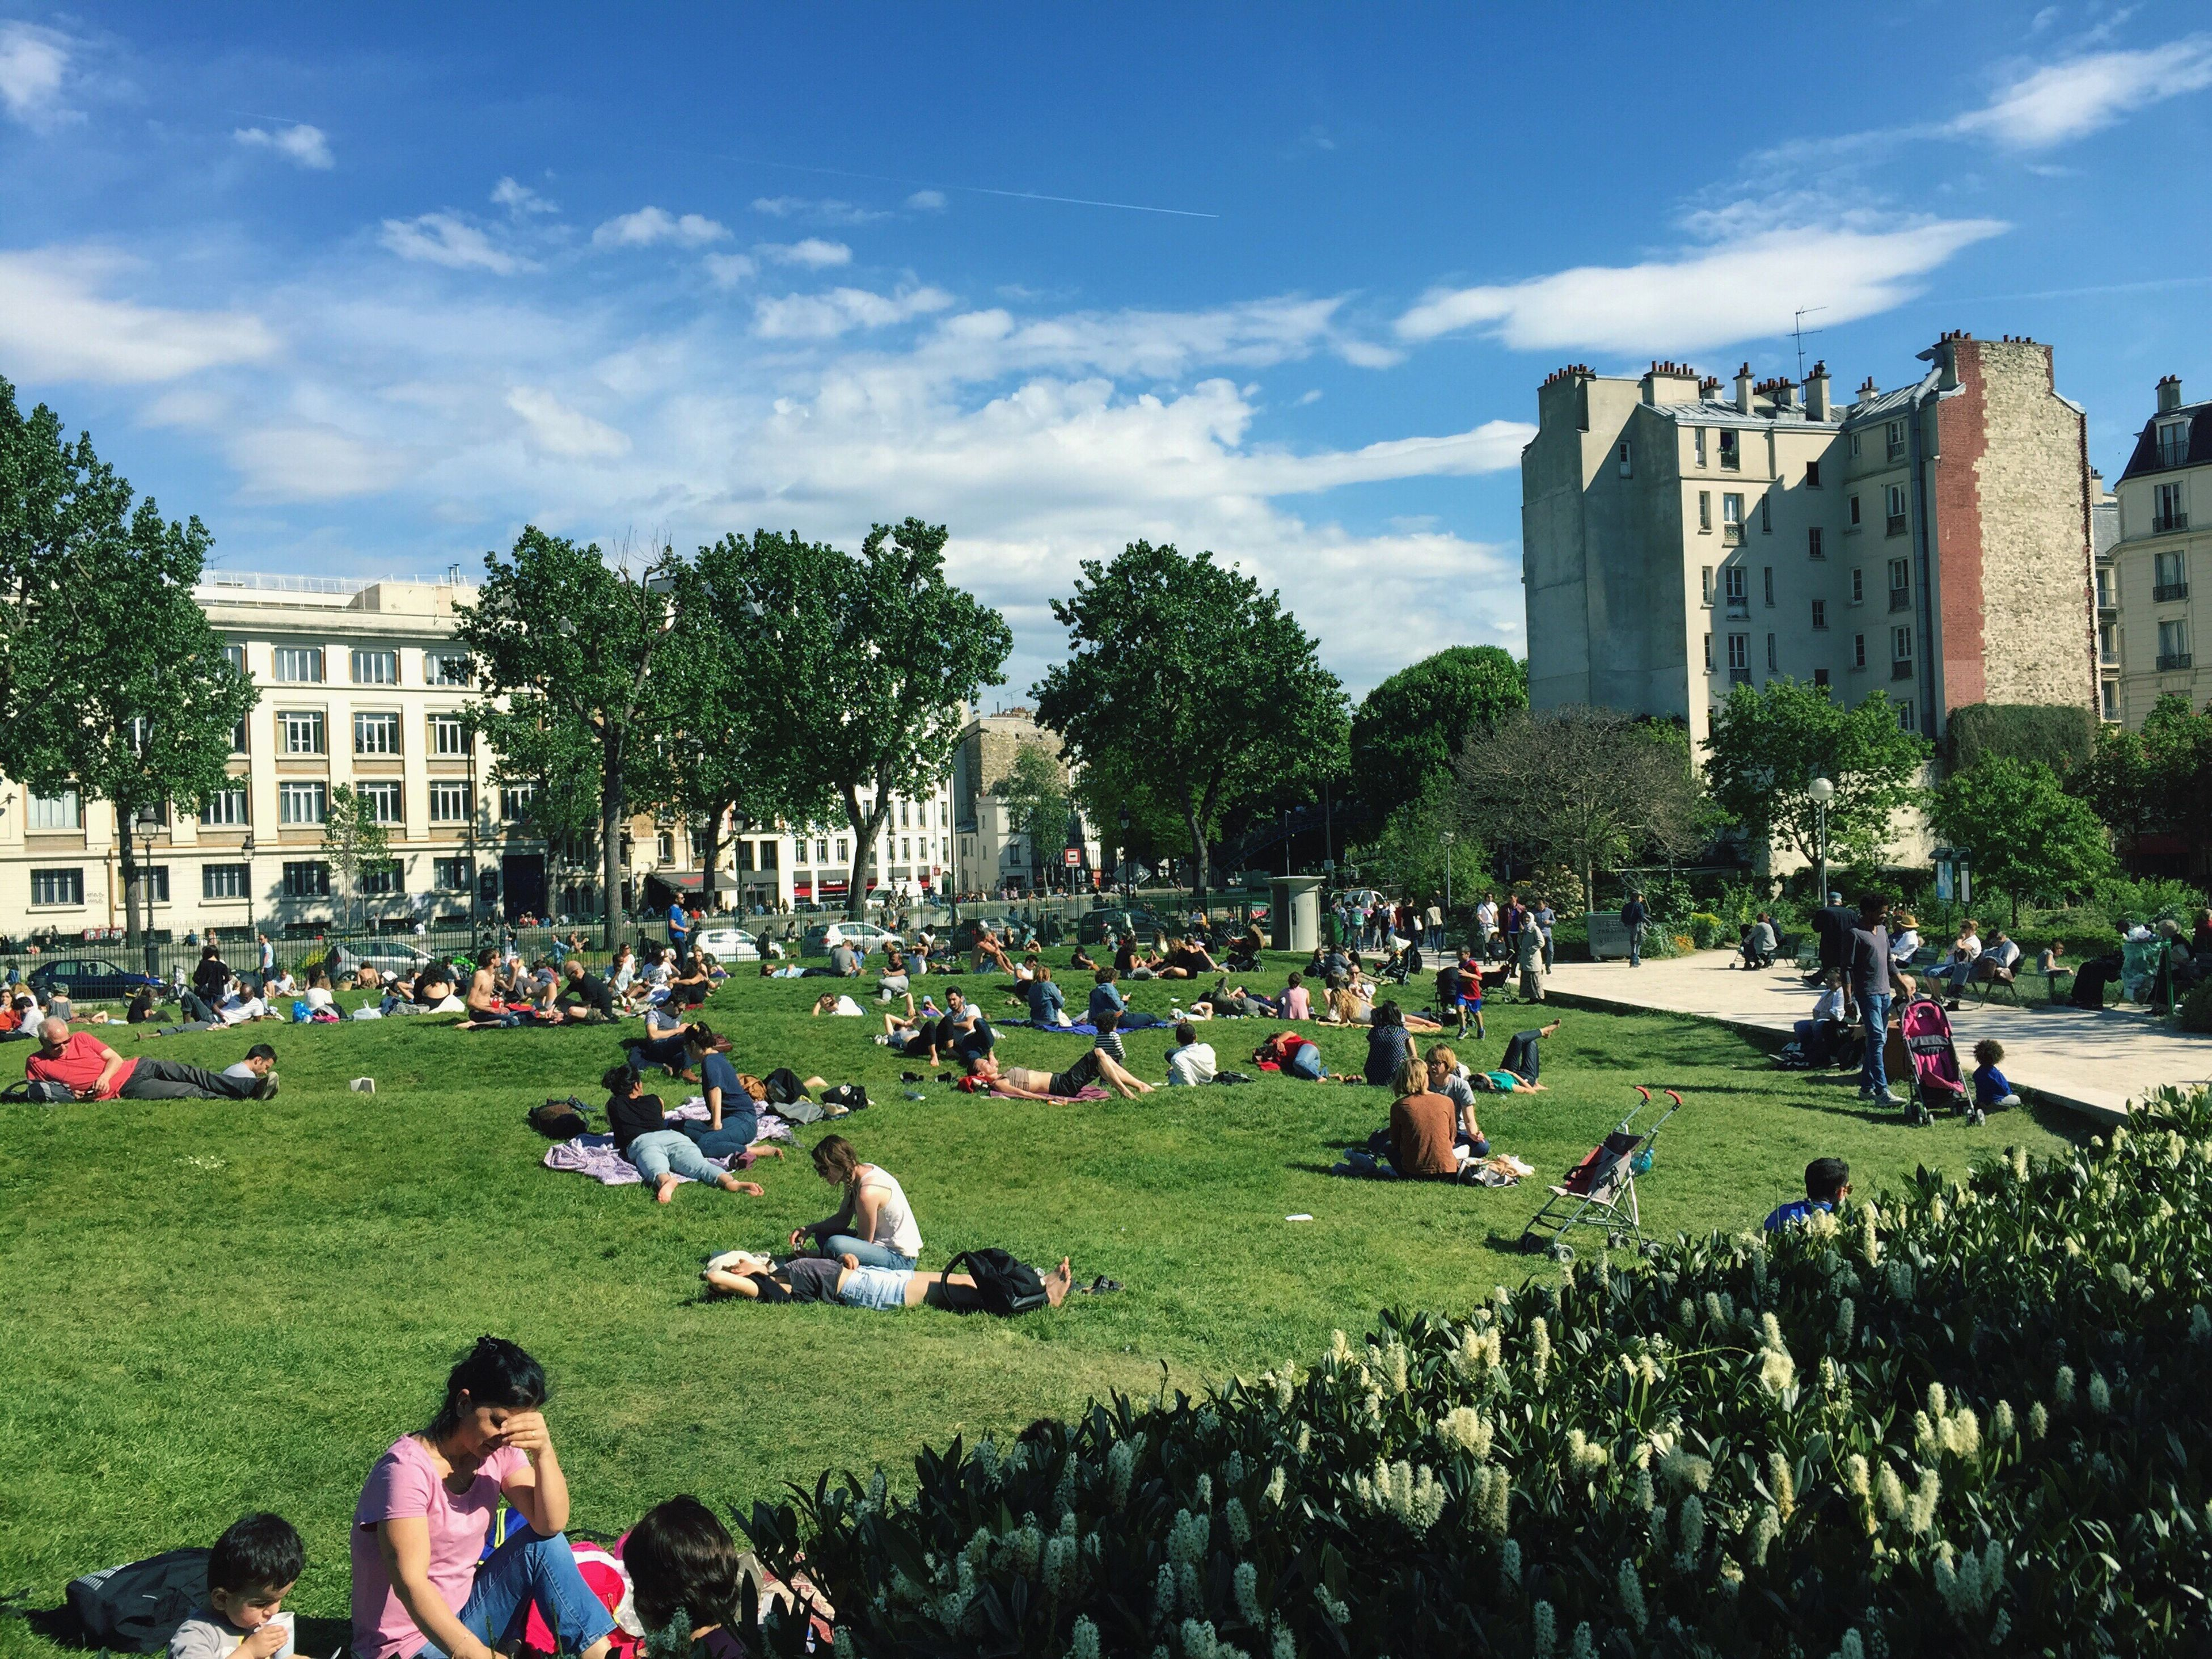 large group of people, lifestyles, leisure activity, person, men, tree, grass, building exterior, architecture, sky, mixed age range, relaxation, built structure, crowd, park - man made space, enjoyment, sitting, city, city life